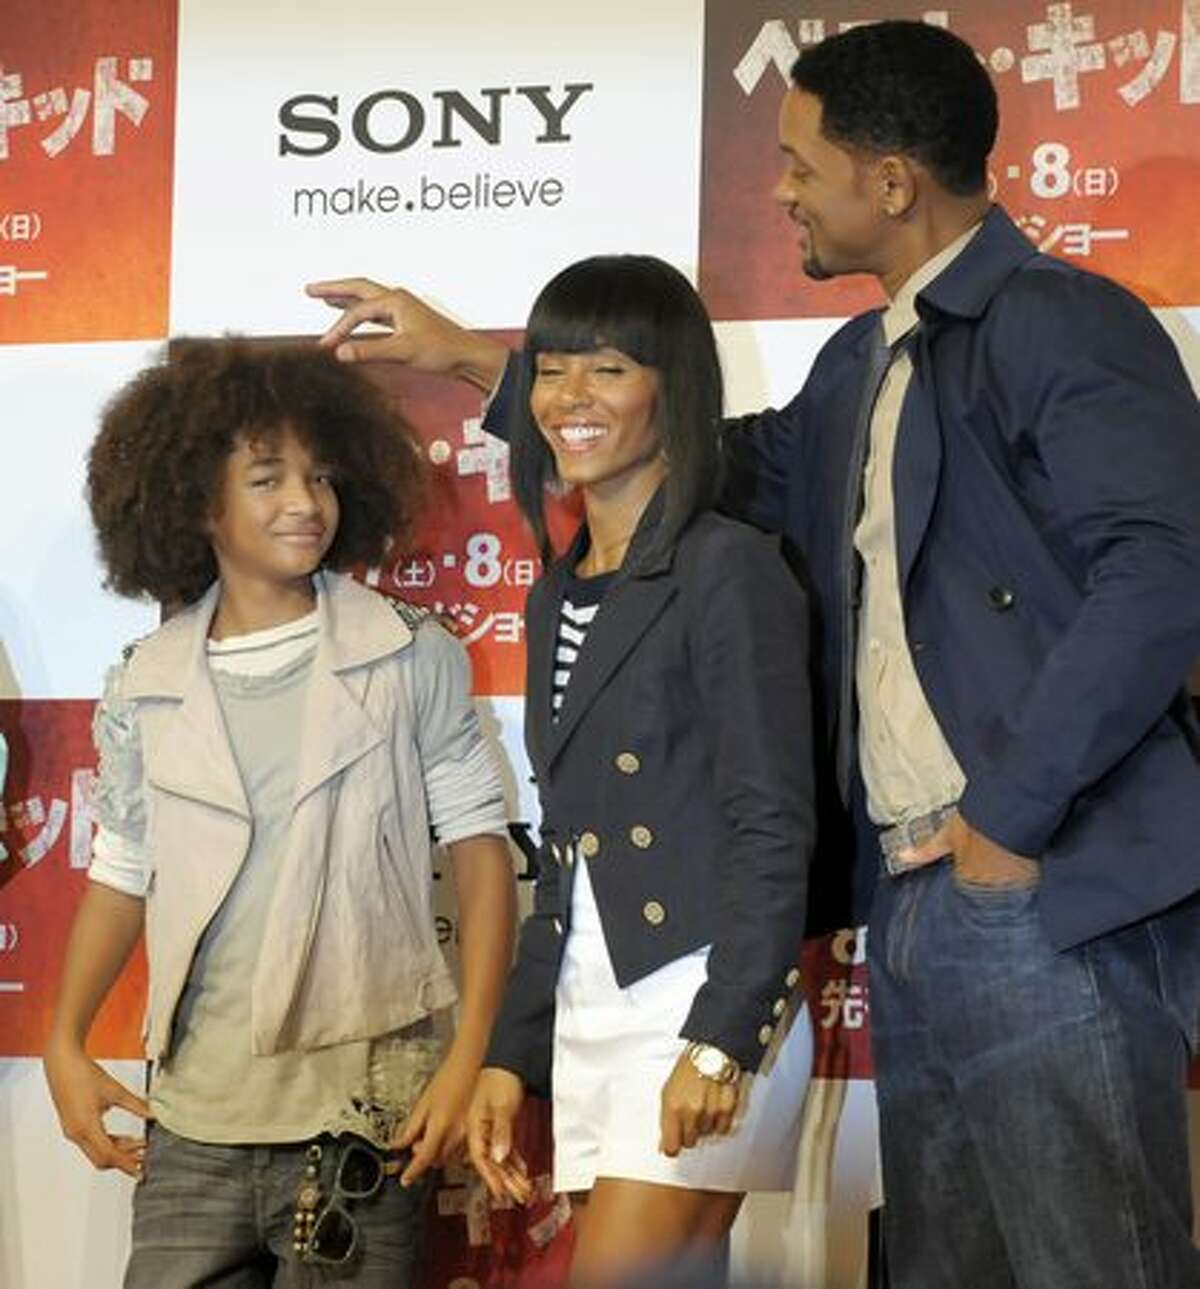 Actor Will Smith (R) touches the hair of his son Jaden Smith while his wife Jada Pinkett Smith (C) smiles during a photo session and press conference for their latest movie